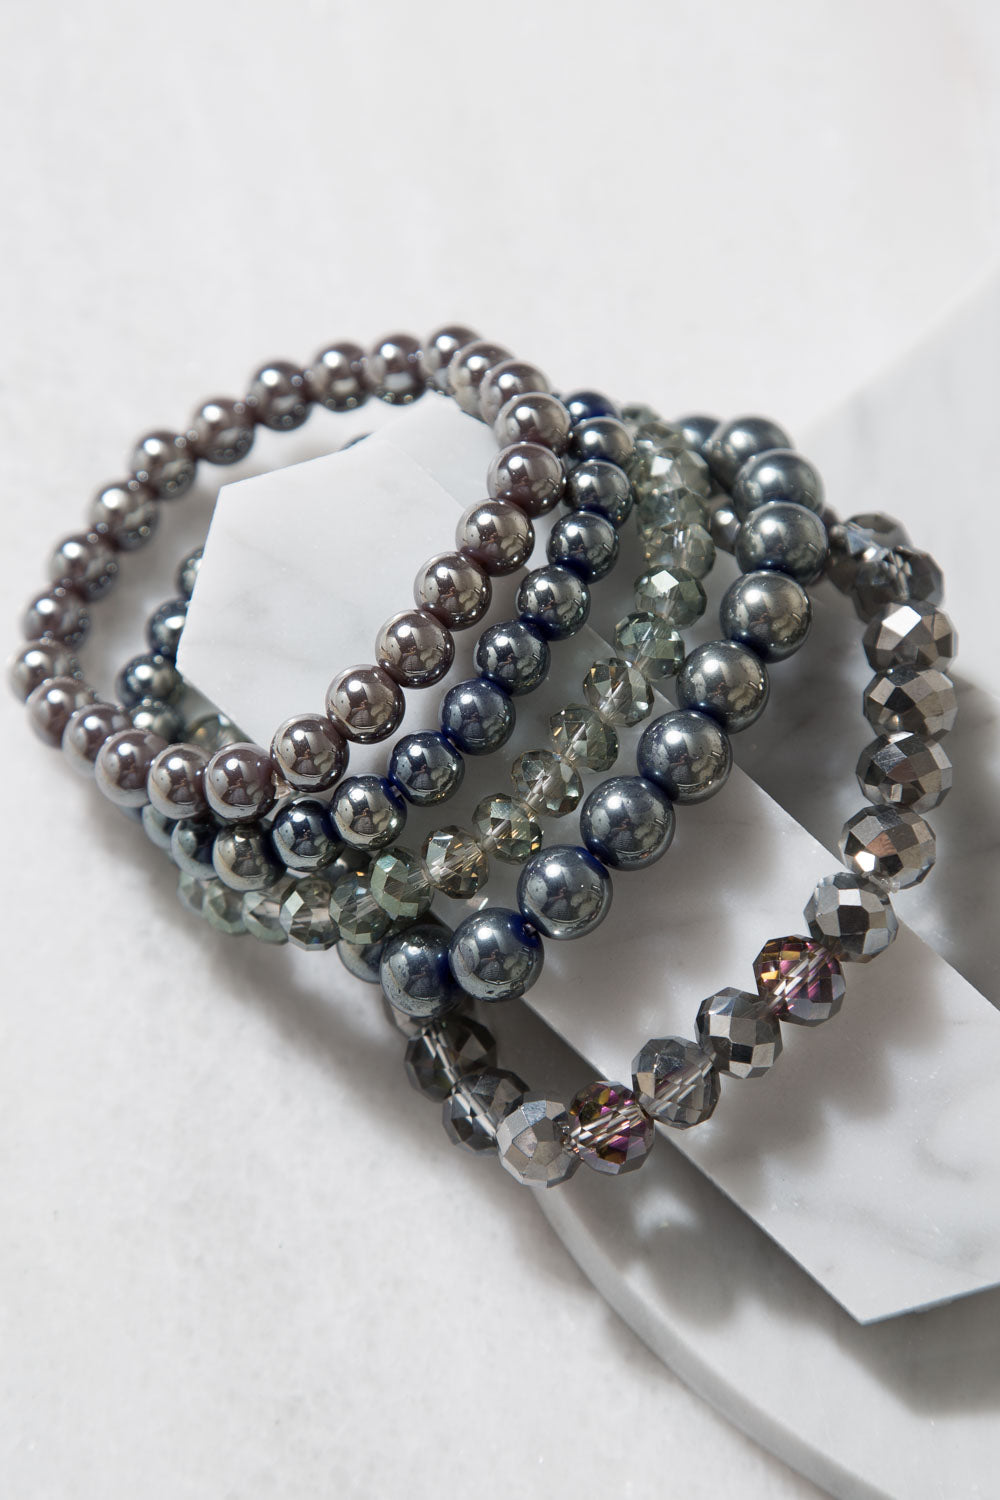 Type 2 Wistful Wrist-full Bracelet